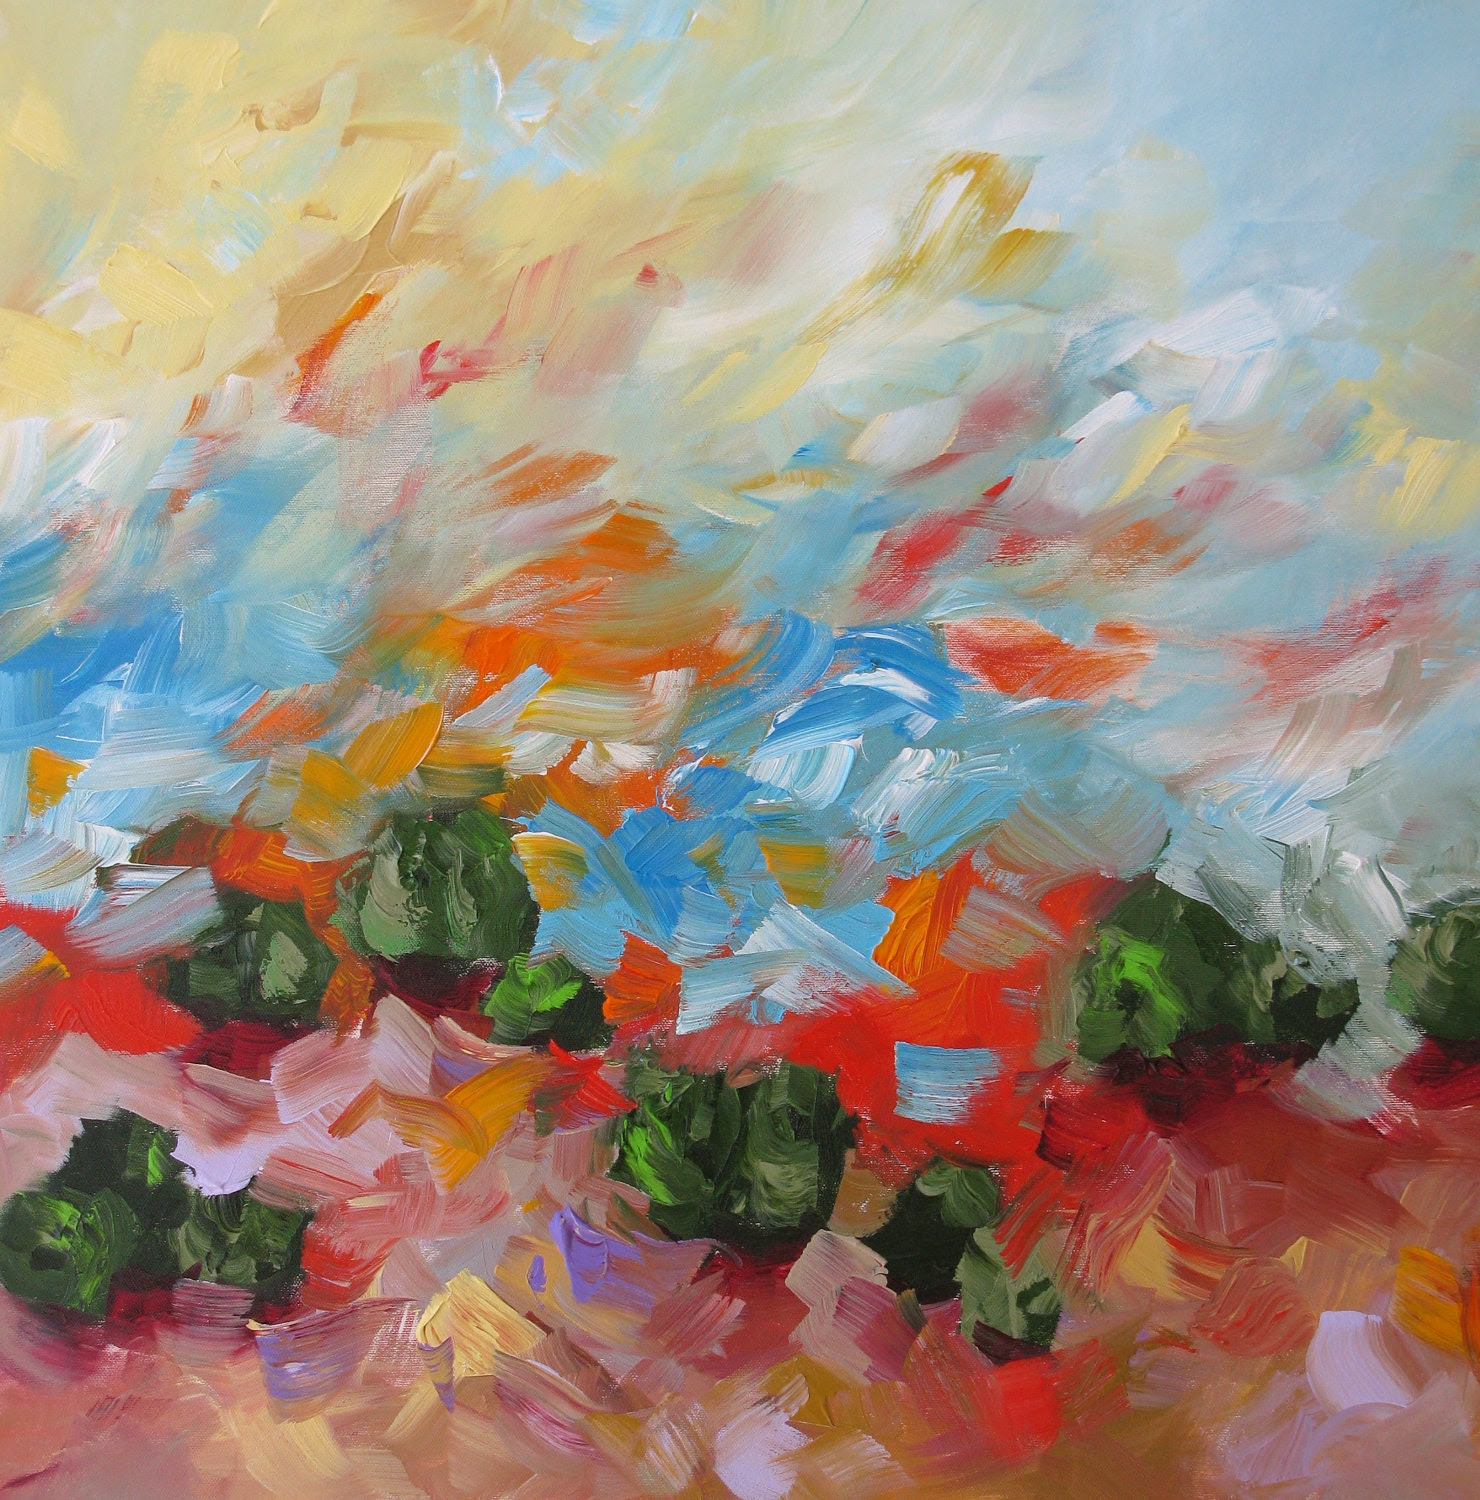 PRINT Of Abstract Landscape Acrylic Painting Dancing Sunrise by Linda Monfort